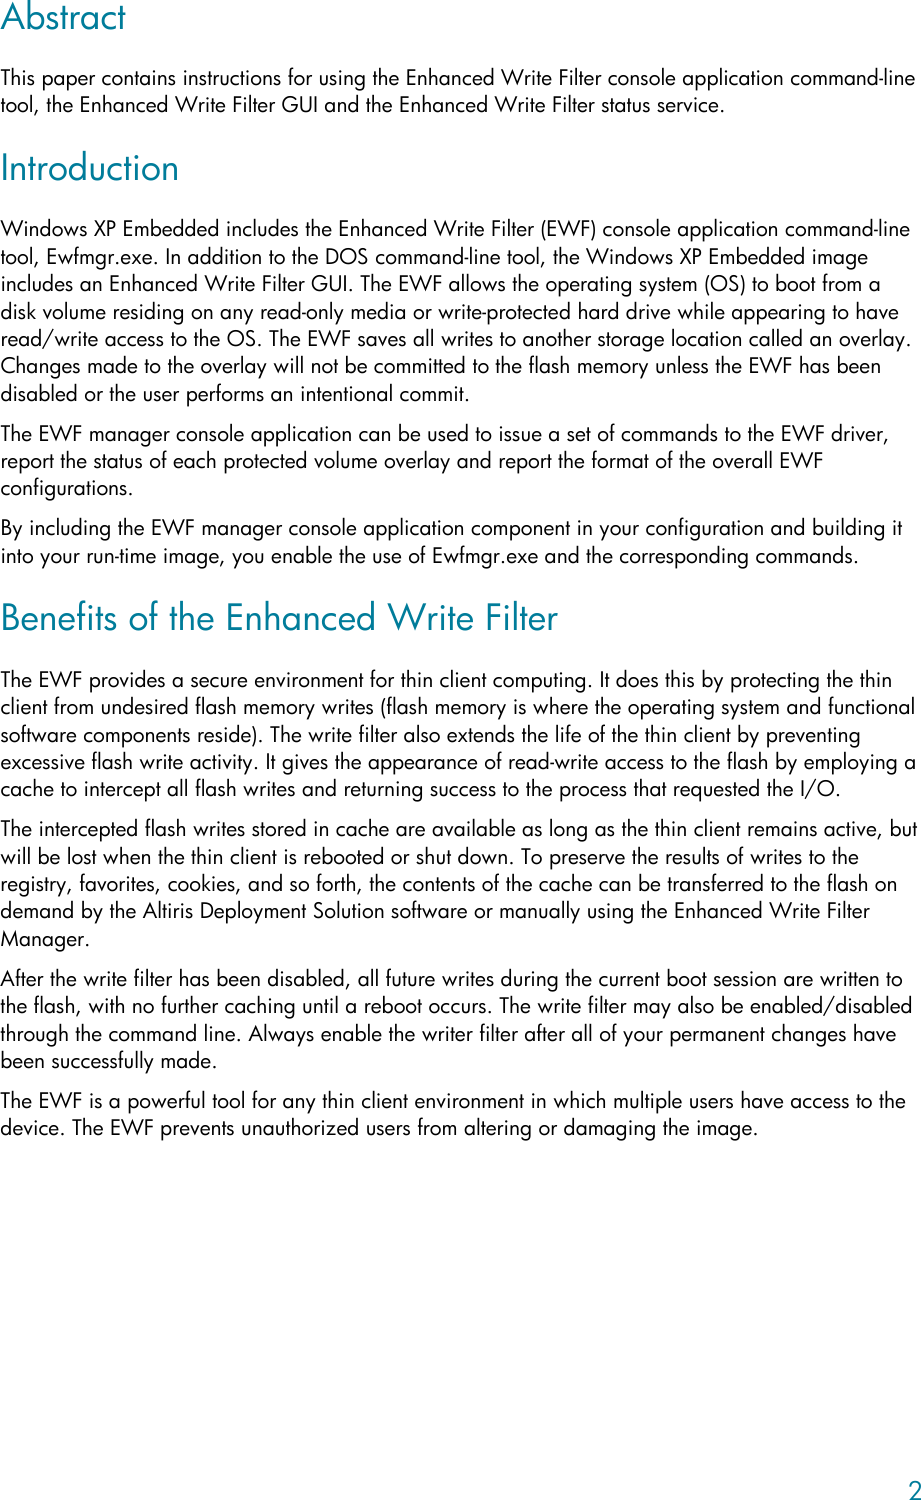 Hp Laptop T5630 Users Manual Using The Enhanced Write Filter